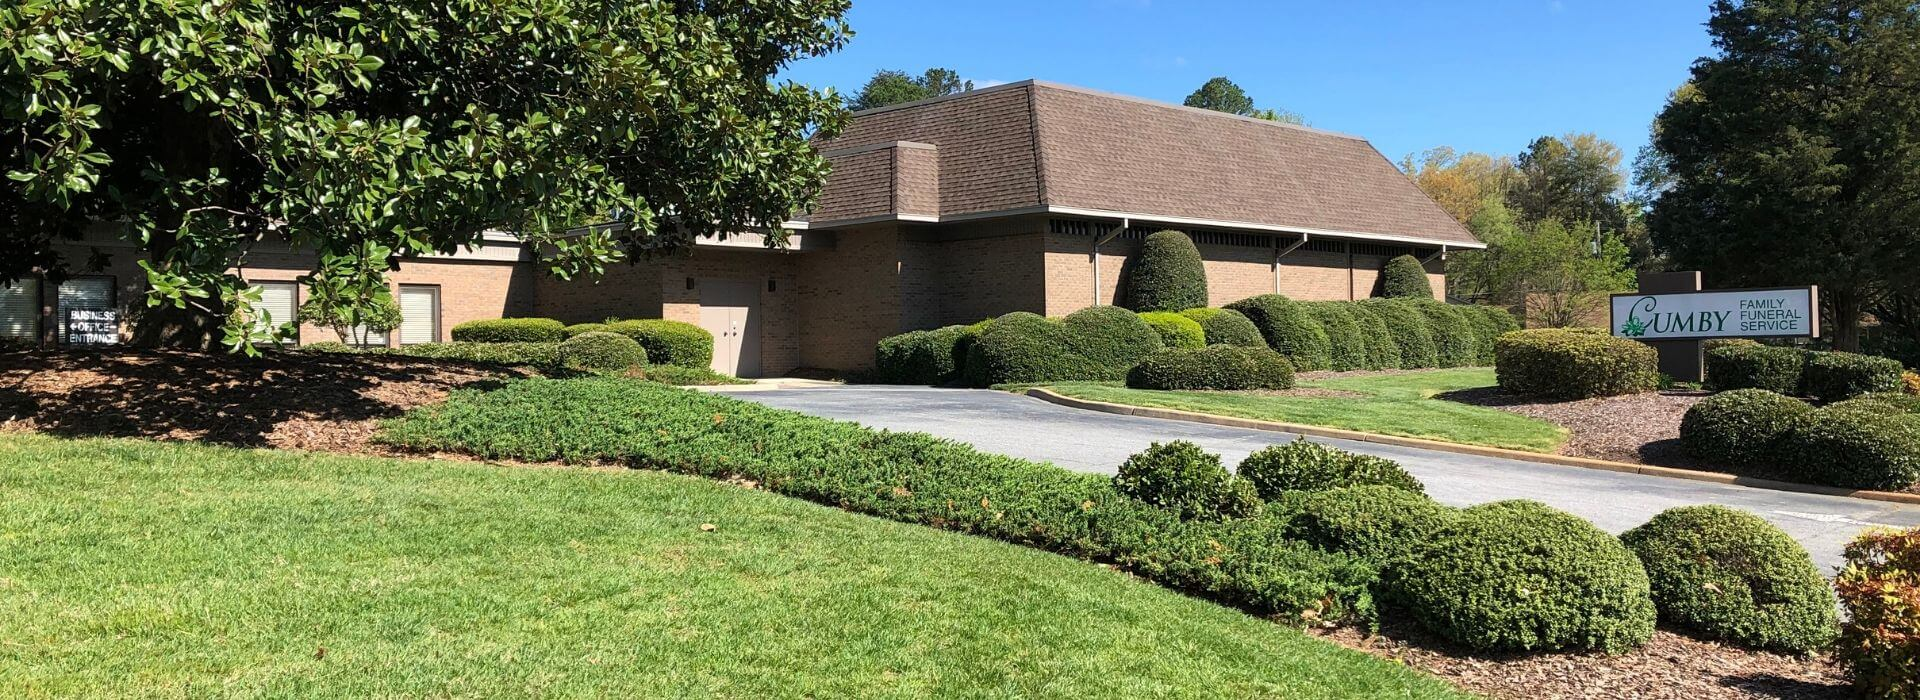 Cumby Family Funeral Service in High Point and Archdale CA